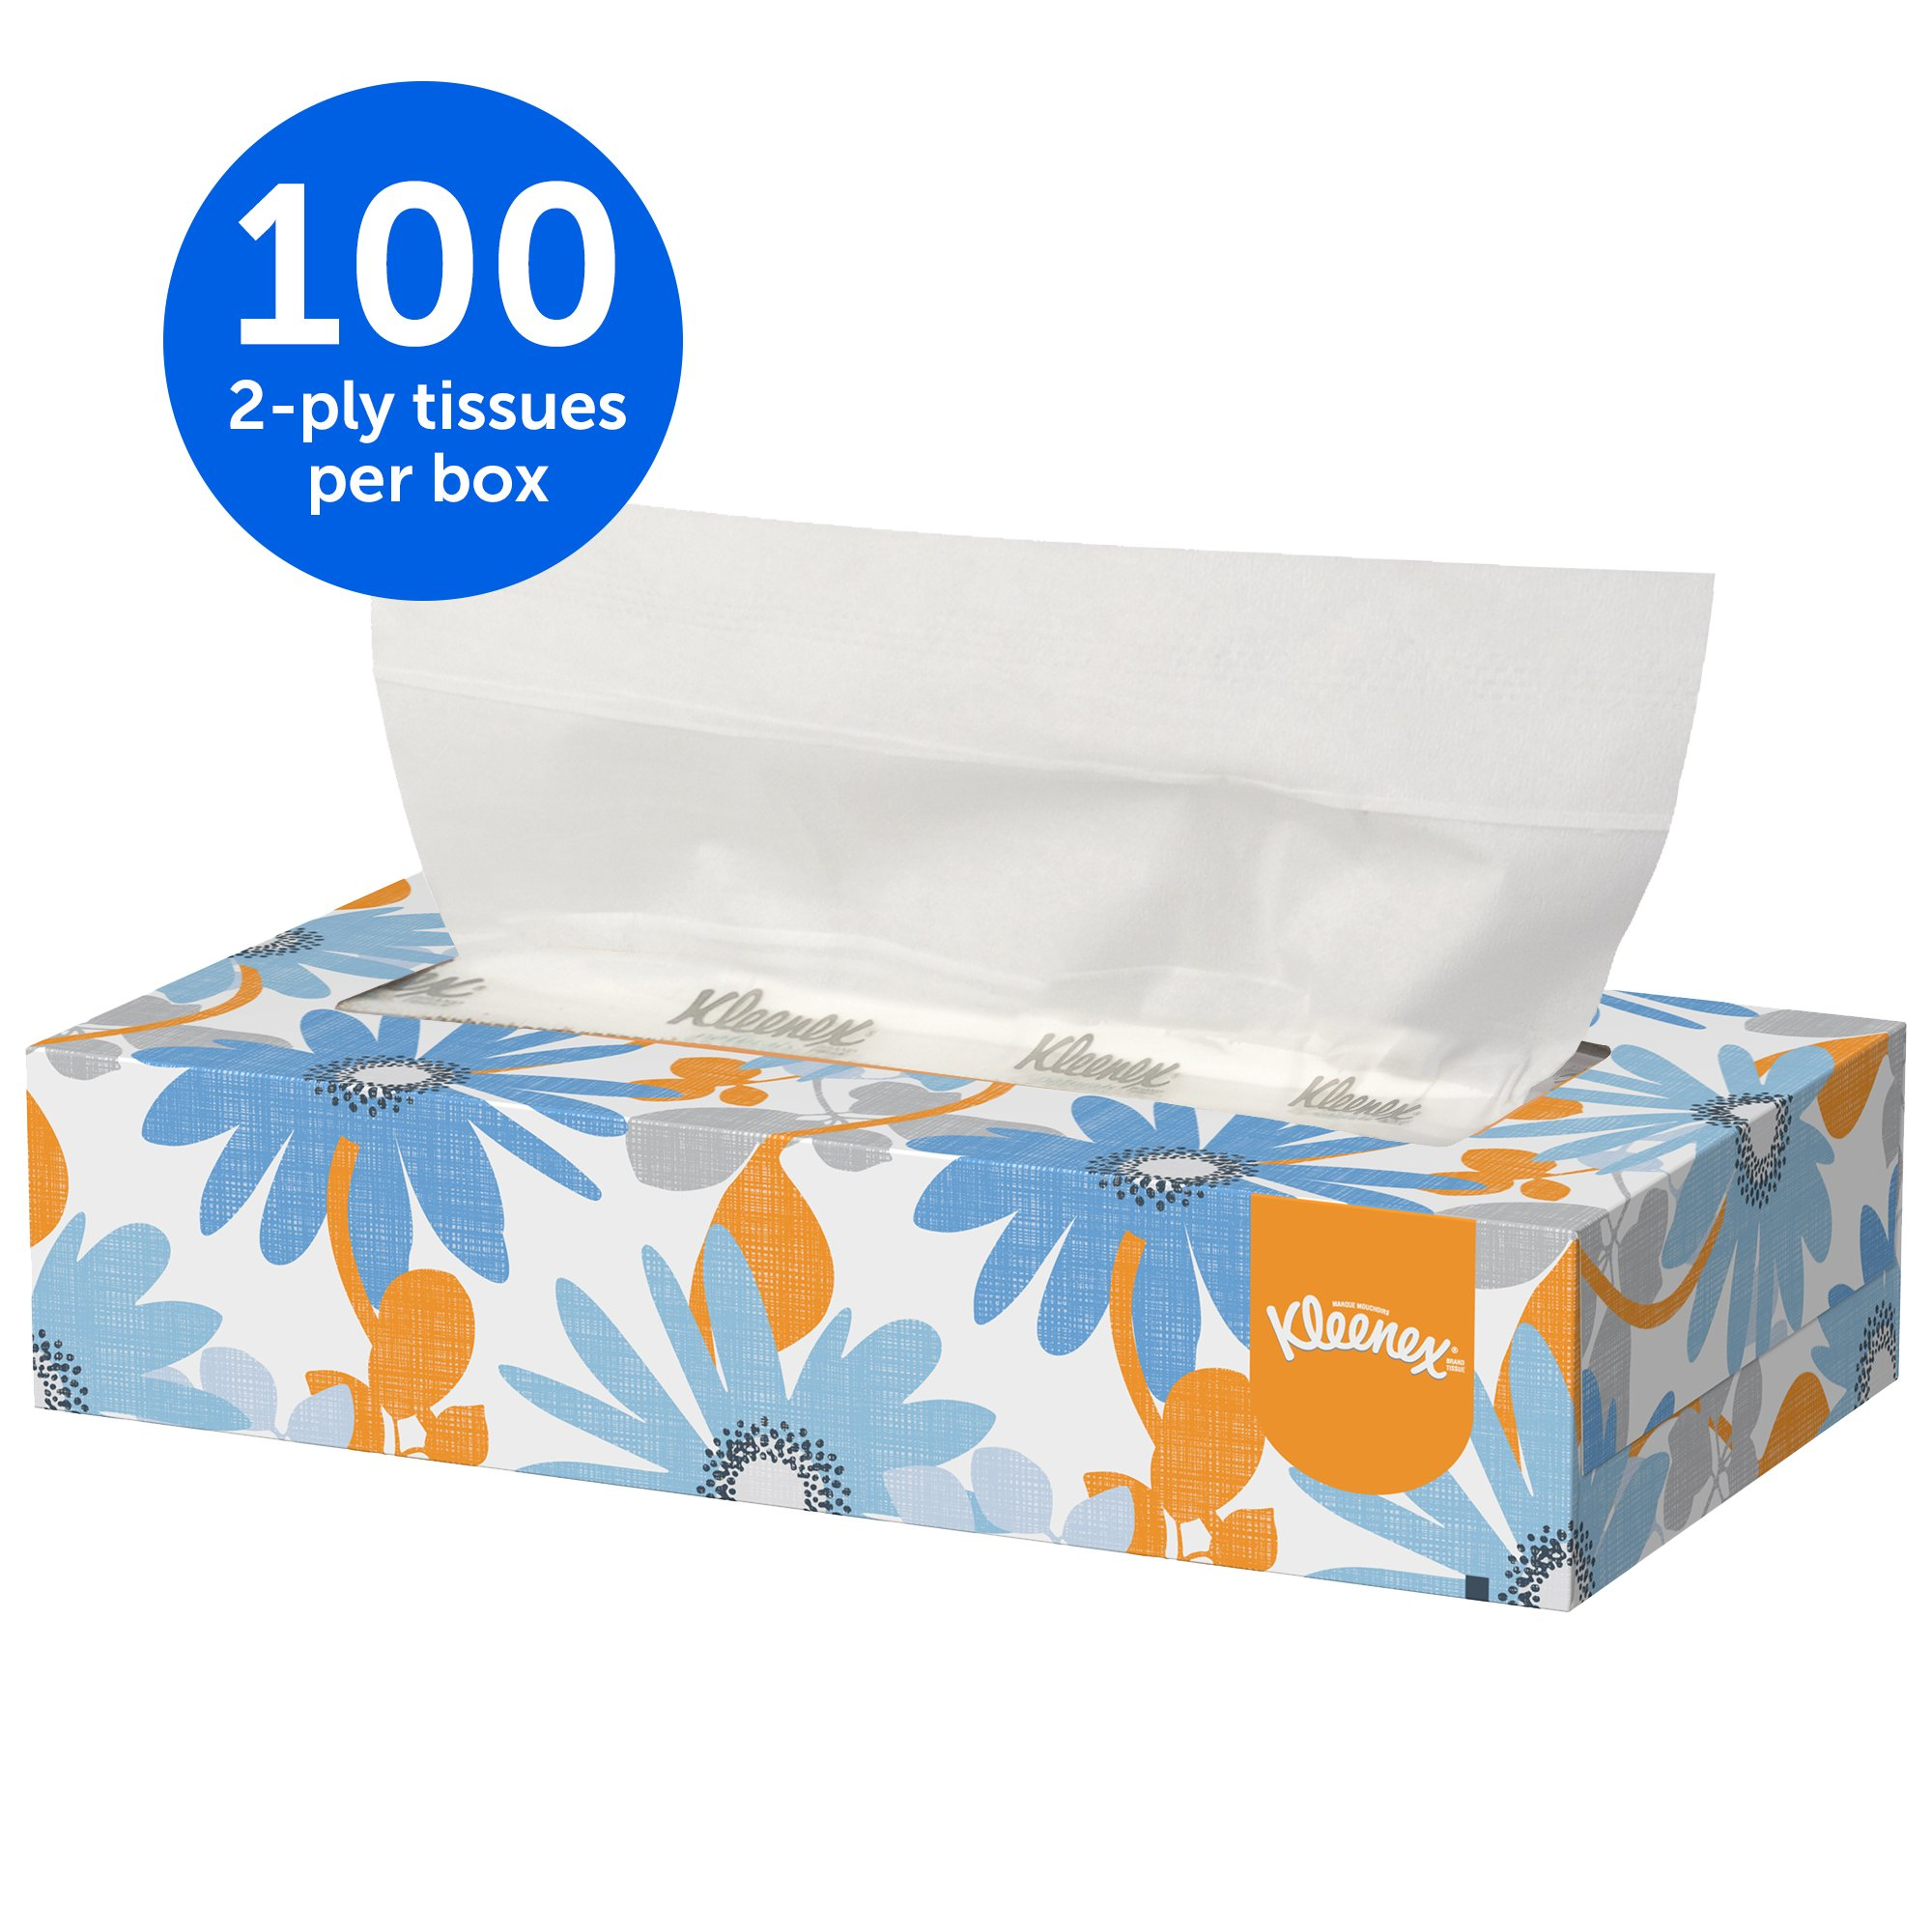 Kleenex Professional Facial Tissue for Business (13216), Flat Tissue Boxes, 60 Boxes/Case, 100 Tissues/Box by Kimberly-Clark Professional (Image #3)